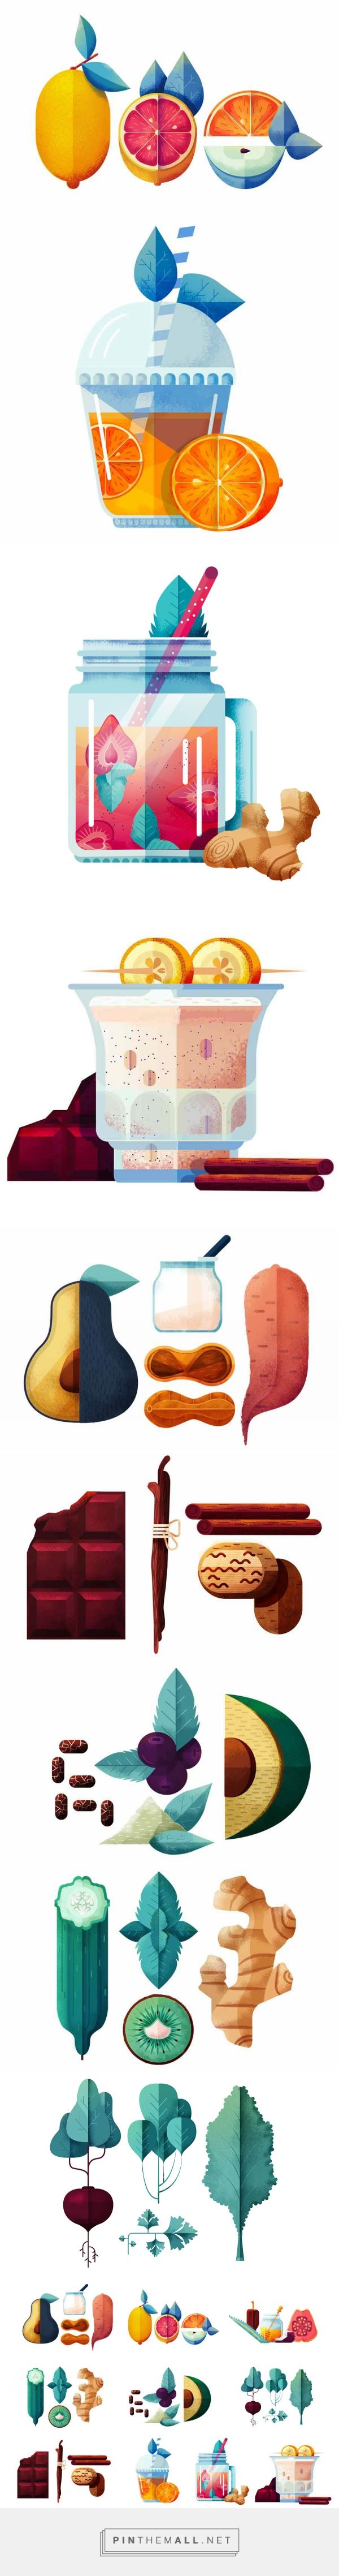 Maïté Franchi - Huffington Post on Behance... - a grouped images picture - Pin Them All